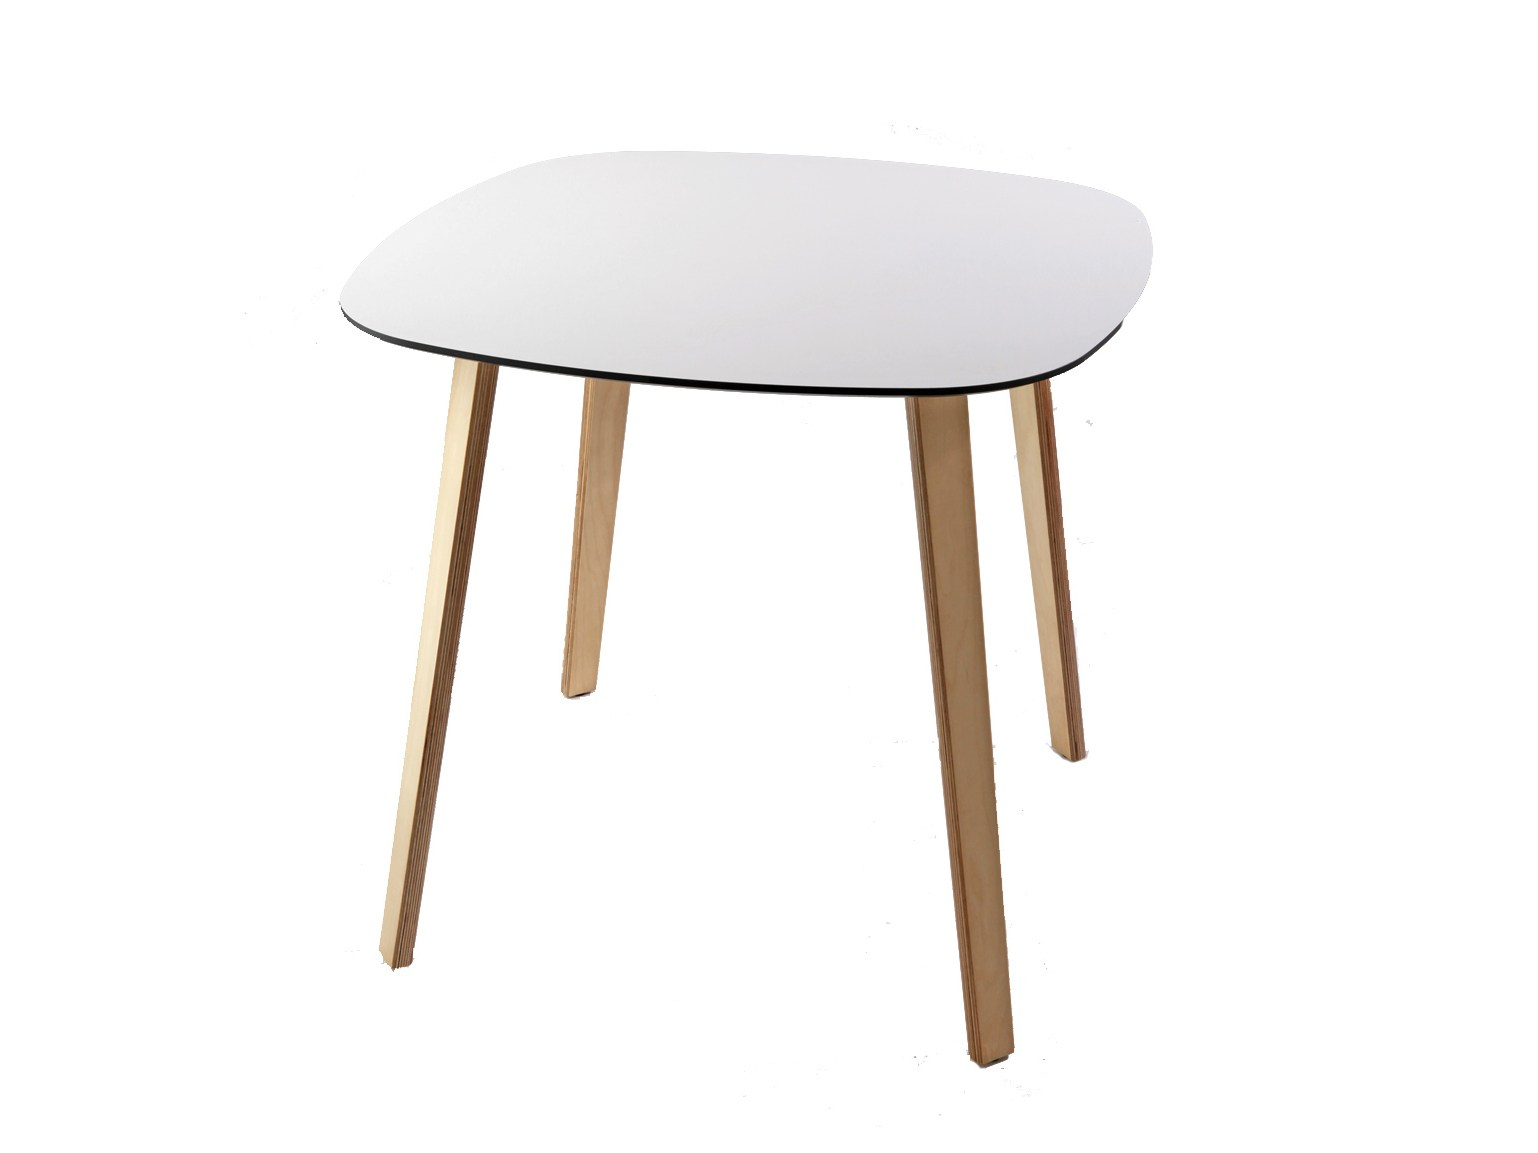 Lottus wood table by enea design lievore altherr molina for Table in table